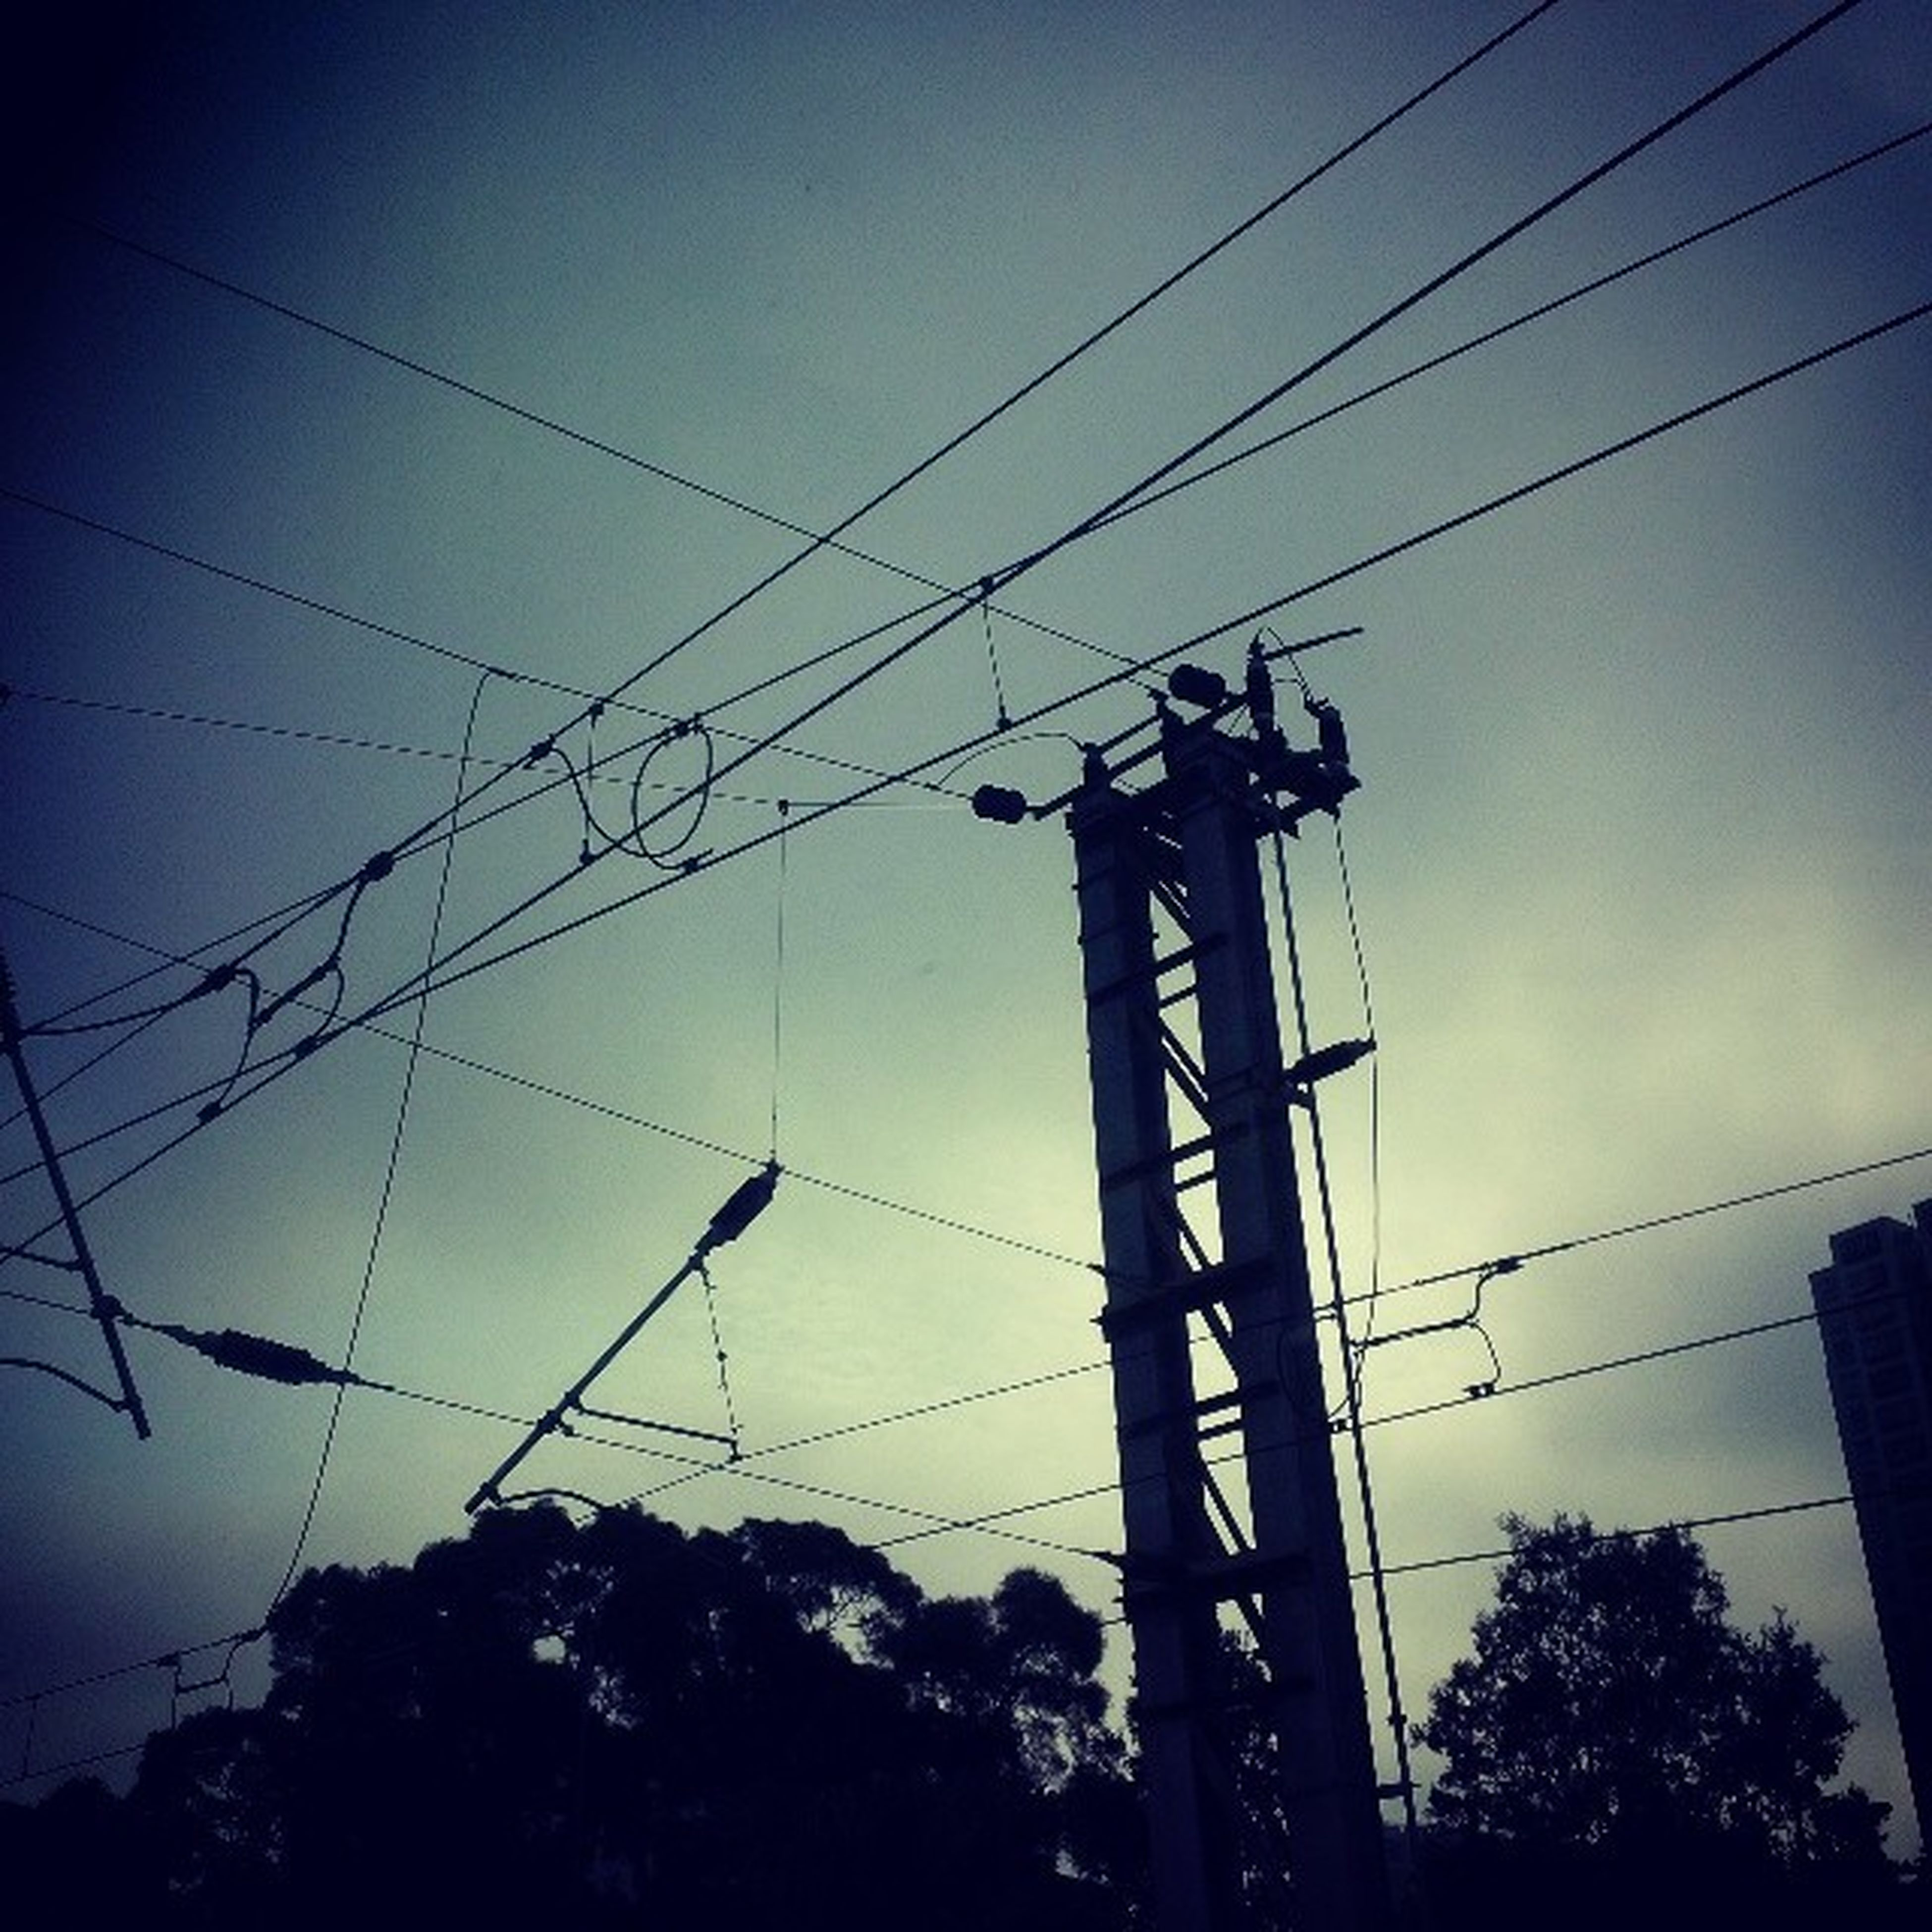 power line, low angle view, power supply, electricity pylon, electricity, silhouette, cable, connection, technology, fuel and power generation, sky, power cable, dusk, street light, pole, lighting equipment, blue, outdoors, tree, no people